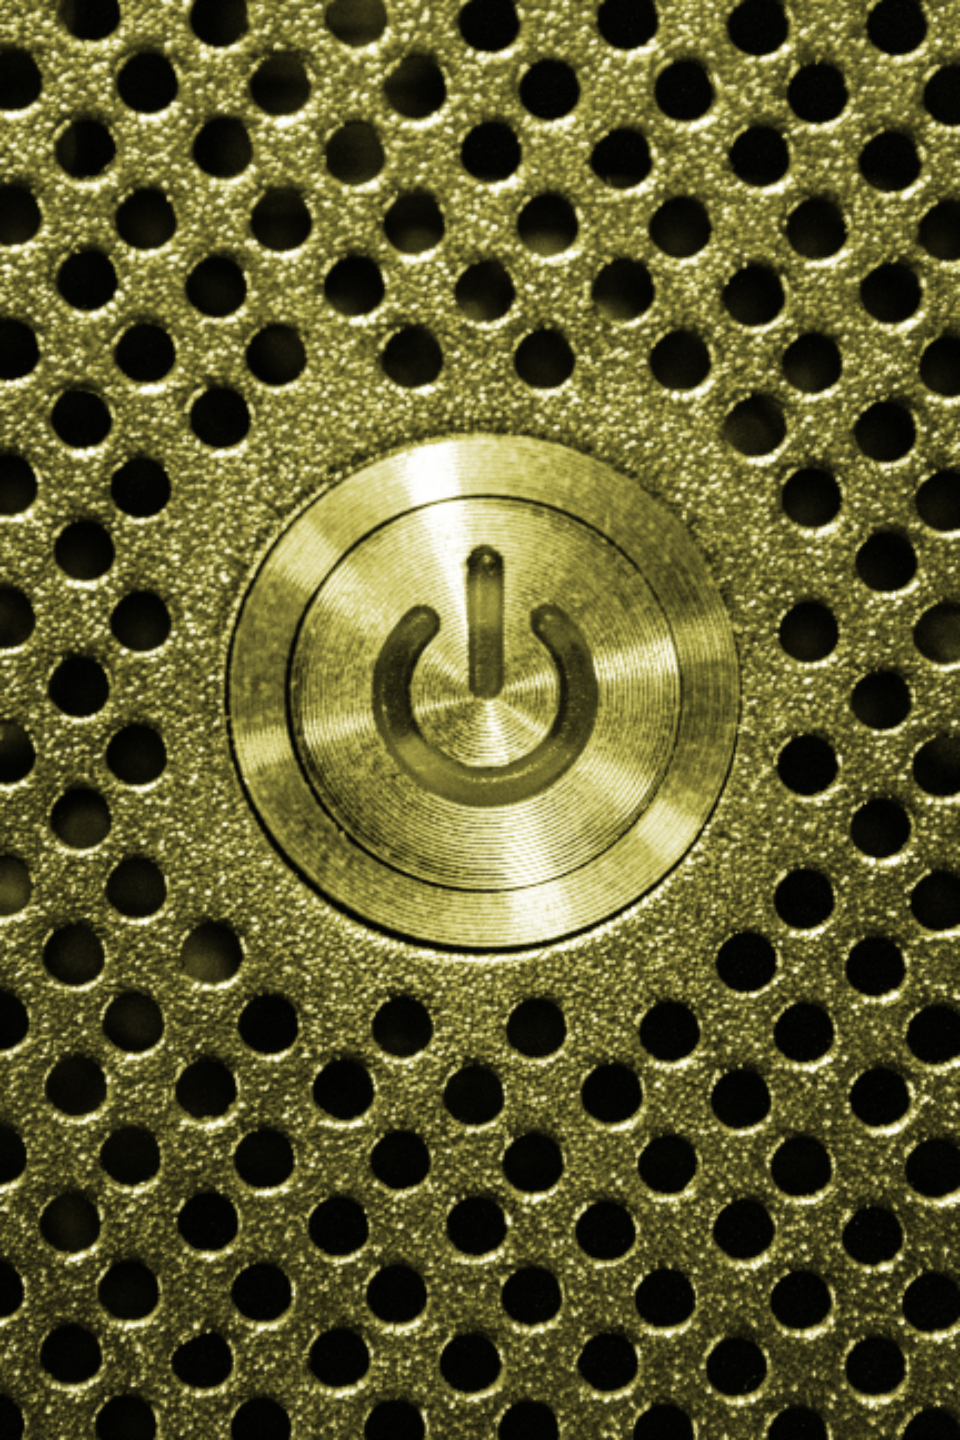 gold power button computer pc electronics shutdown metal texture pattern macro close up shiny object technology